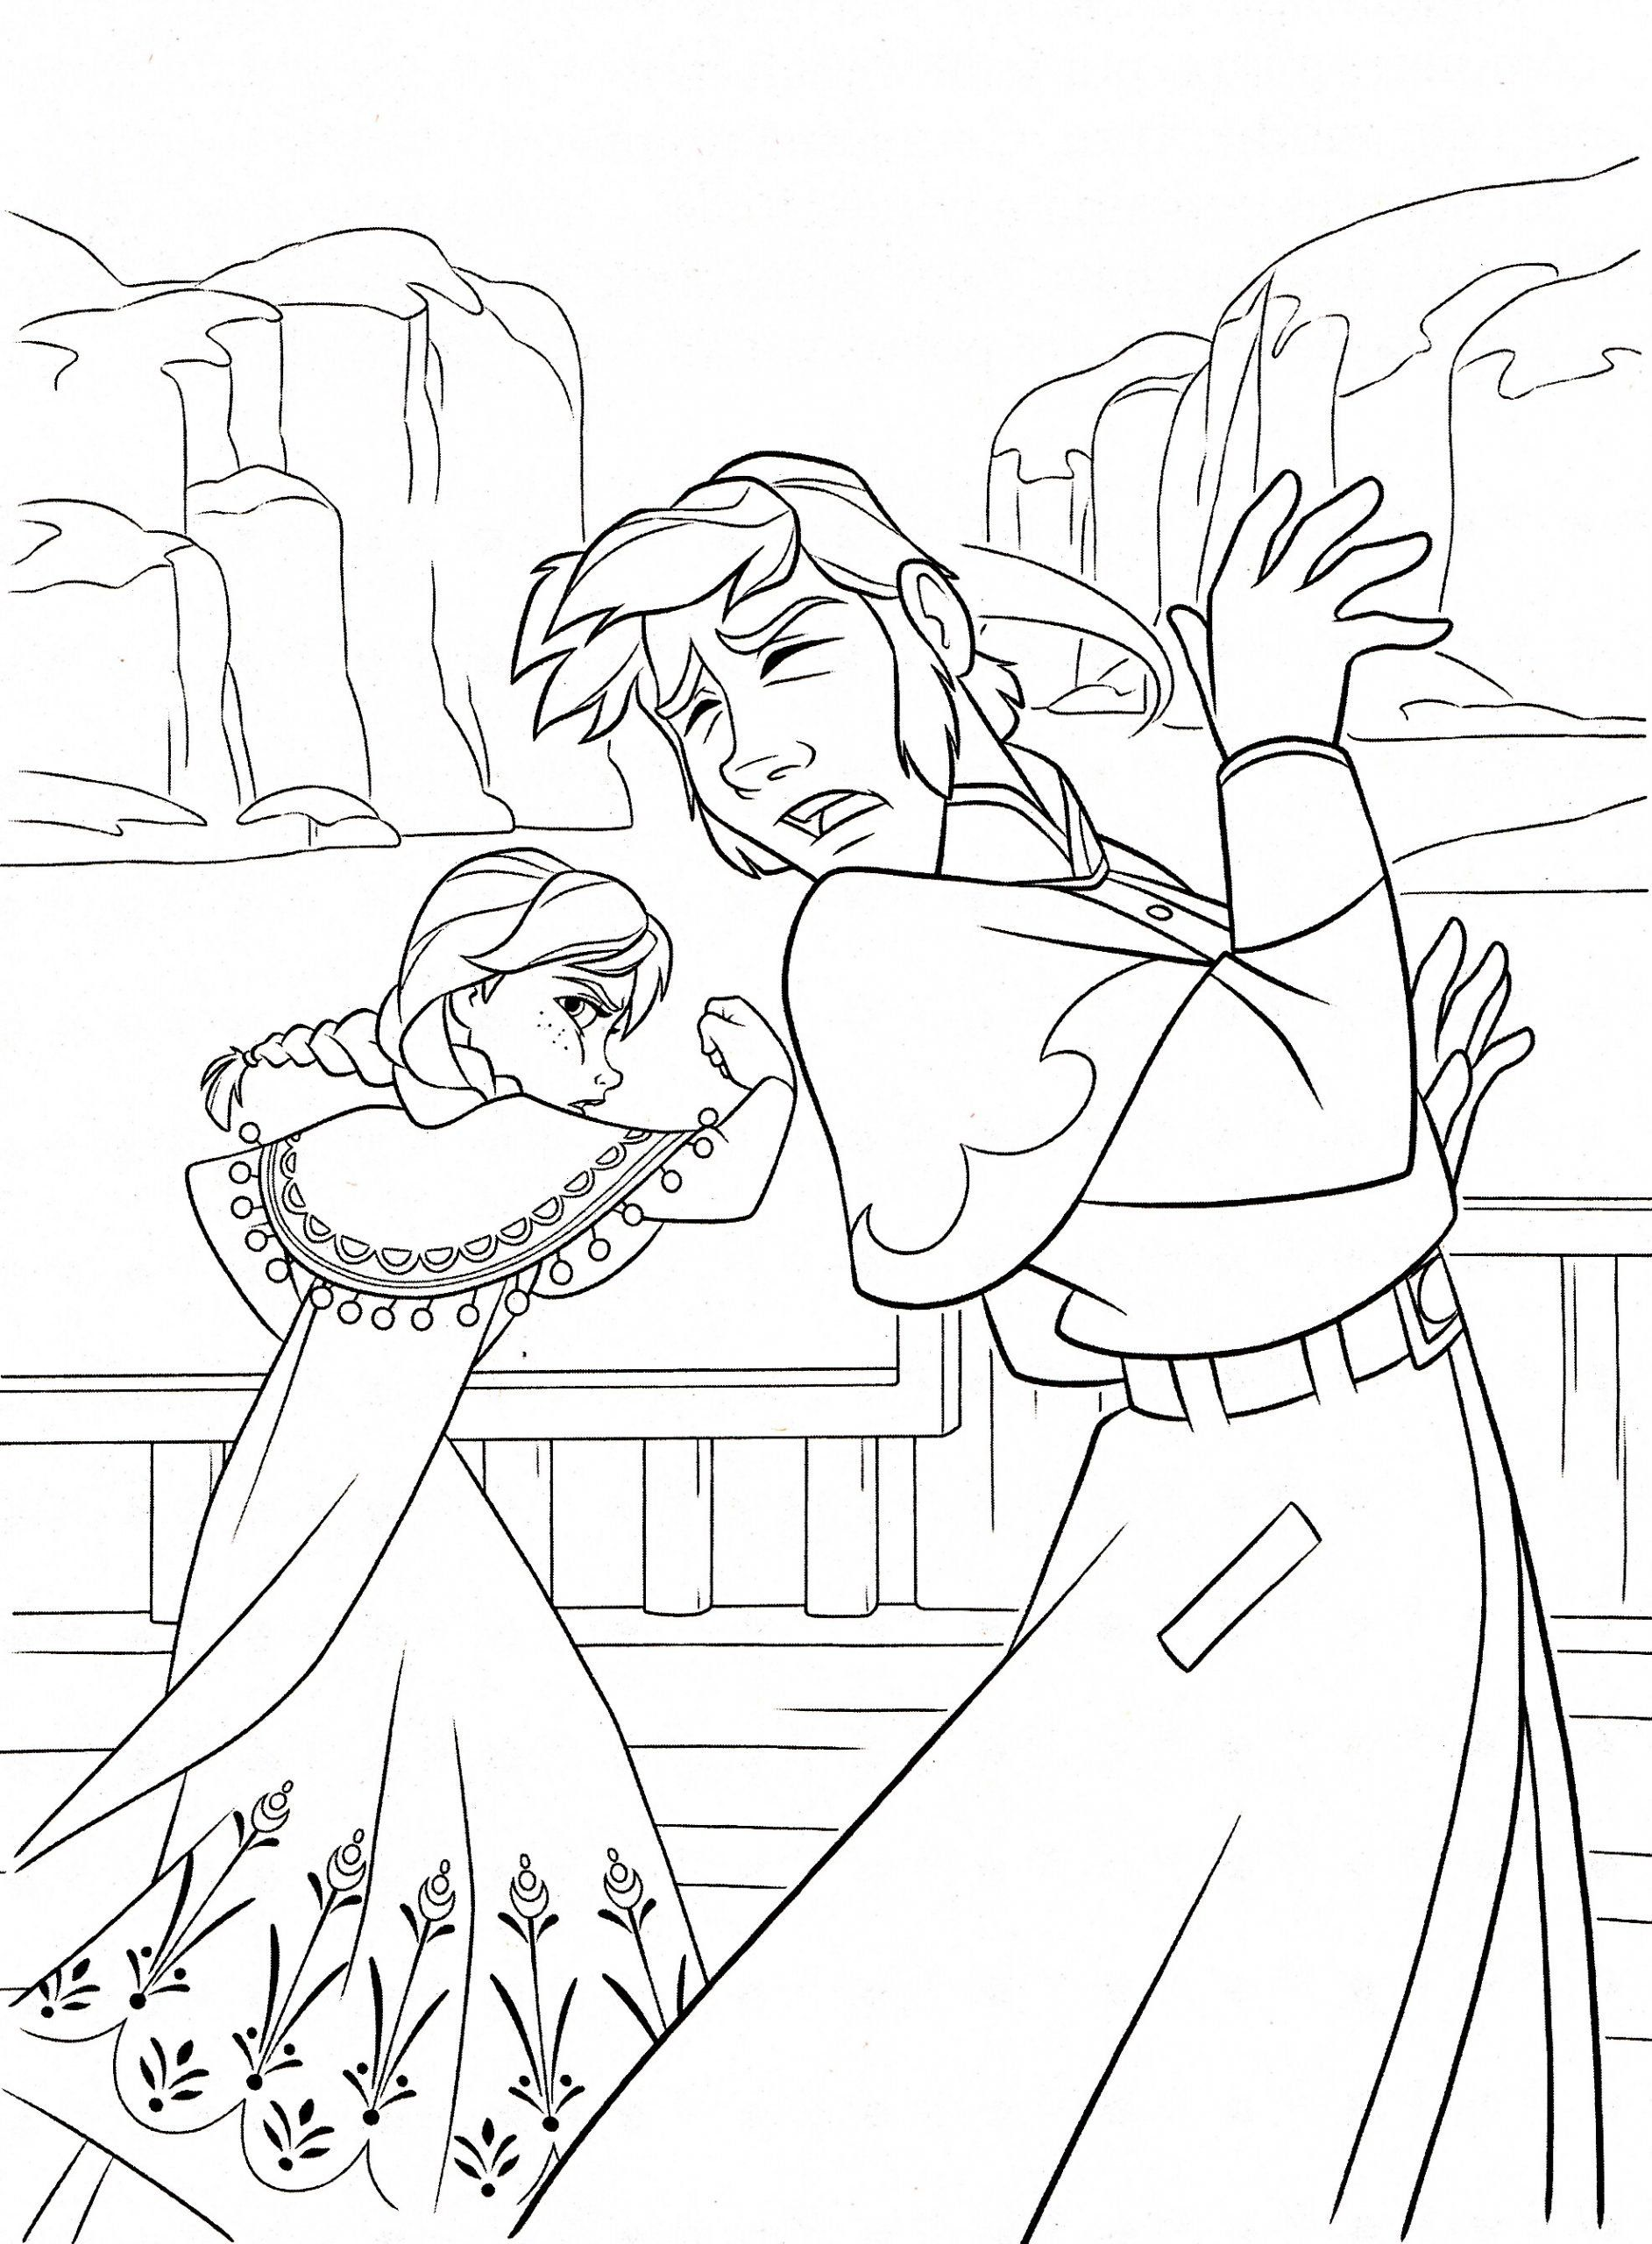 Anna And Elsa Coloring Page Frozen Anna Coloring Pages Getcoloringpages Elsa Coloring Pages Disney Coloring Pages Mermaid Coloring Pages